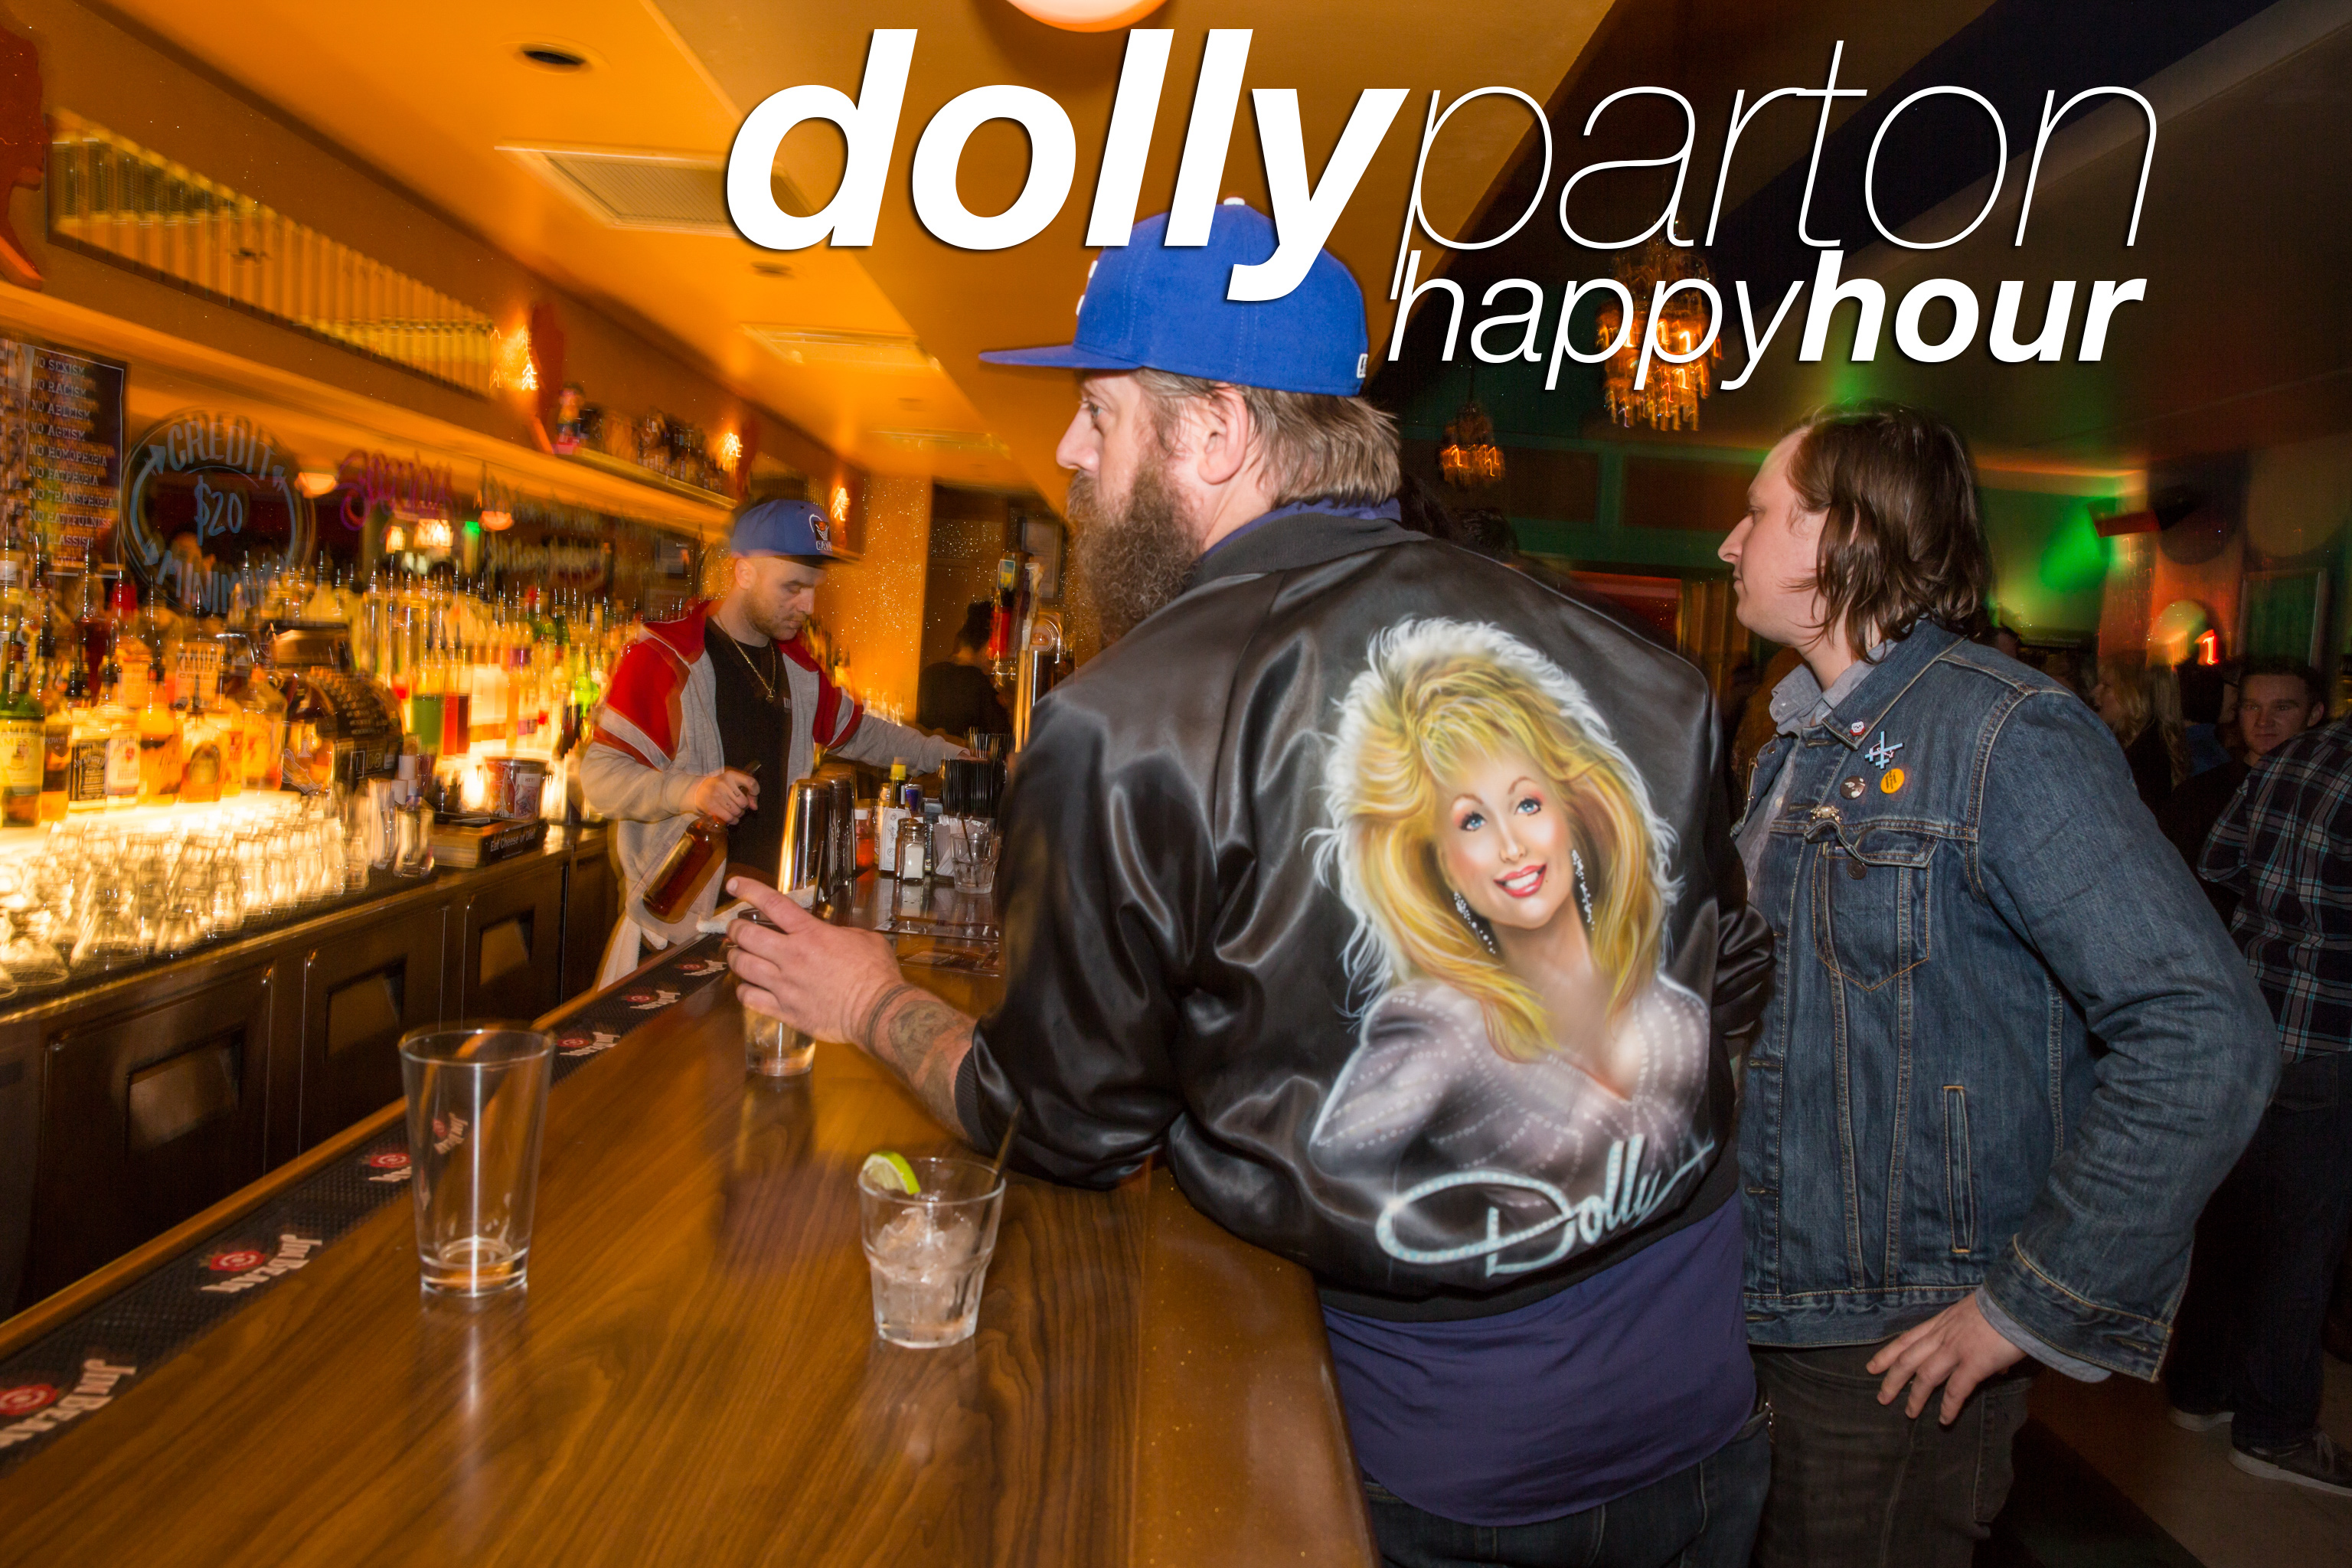 party photos from the dolly parton happy hour at beauty bar, april 2017